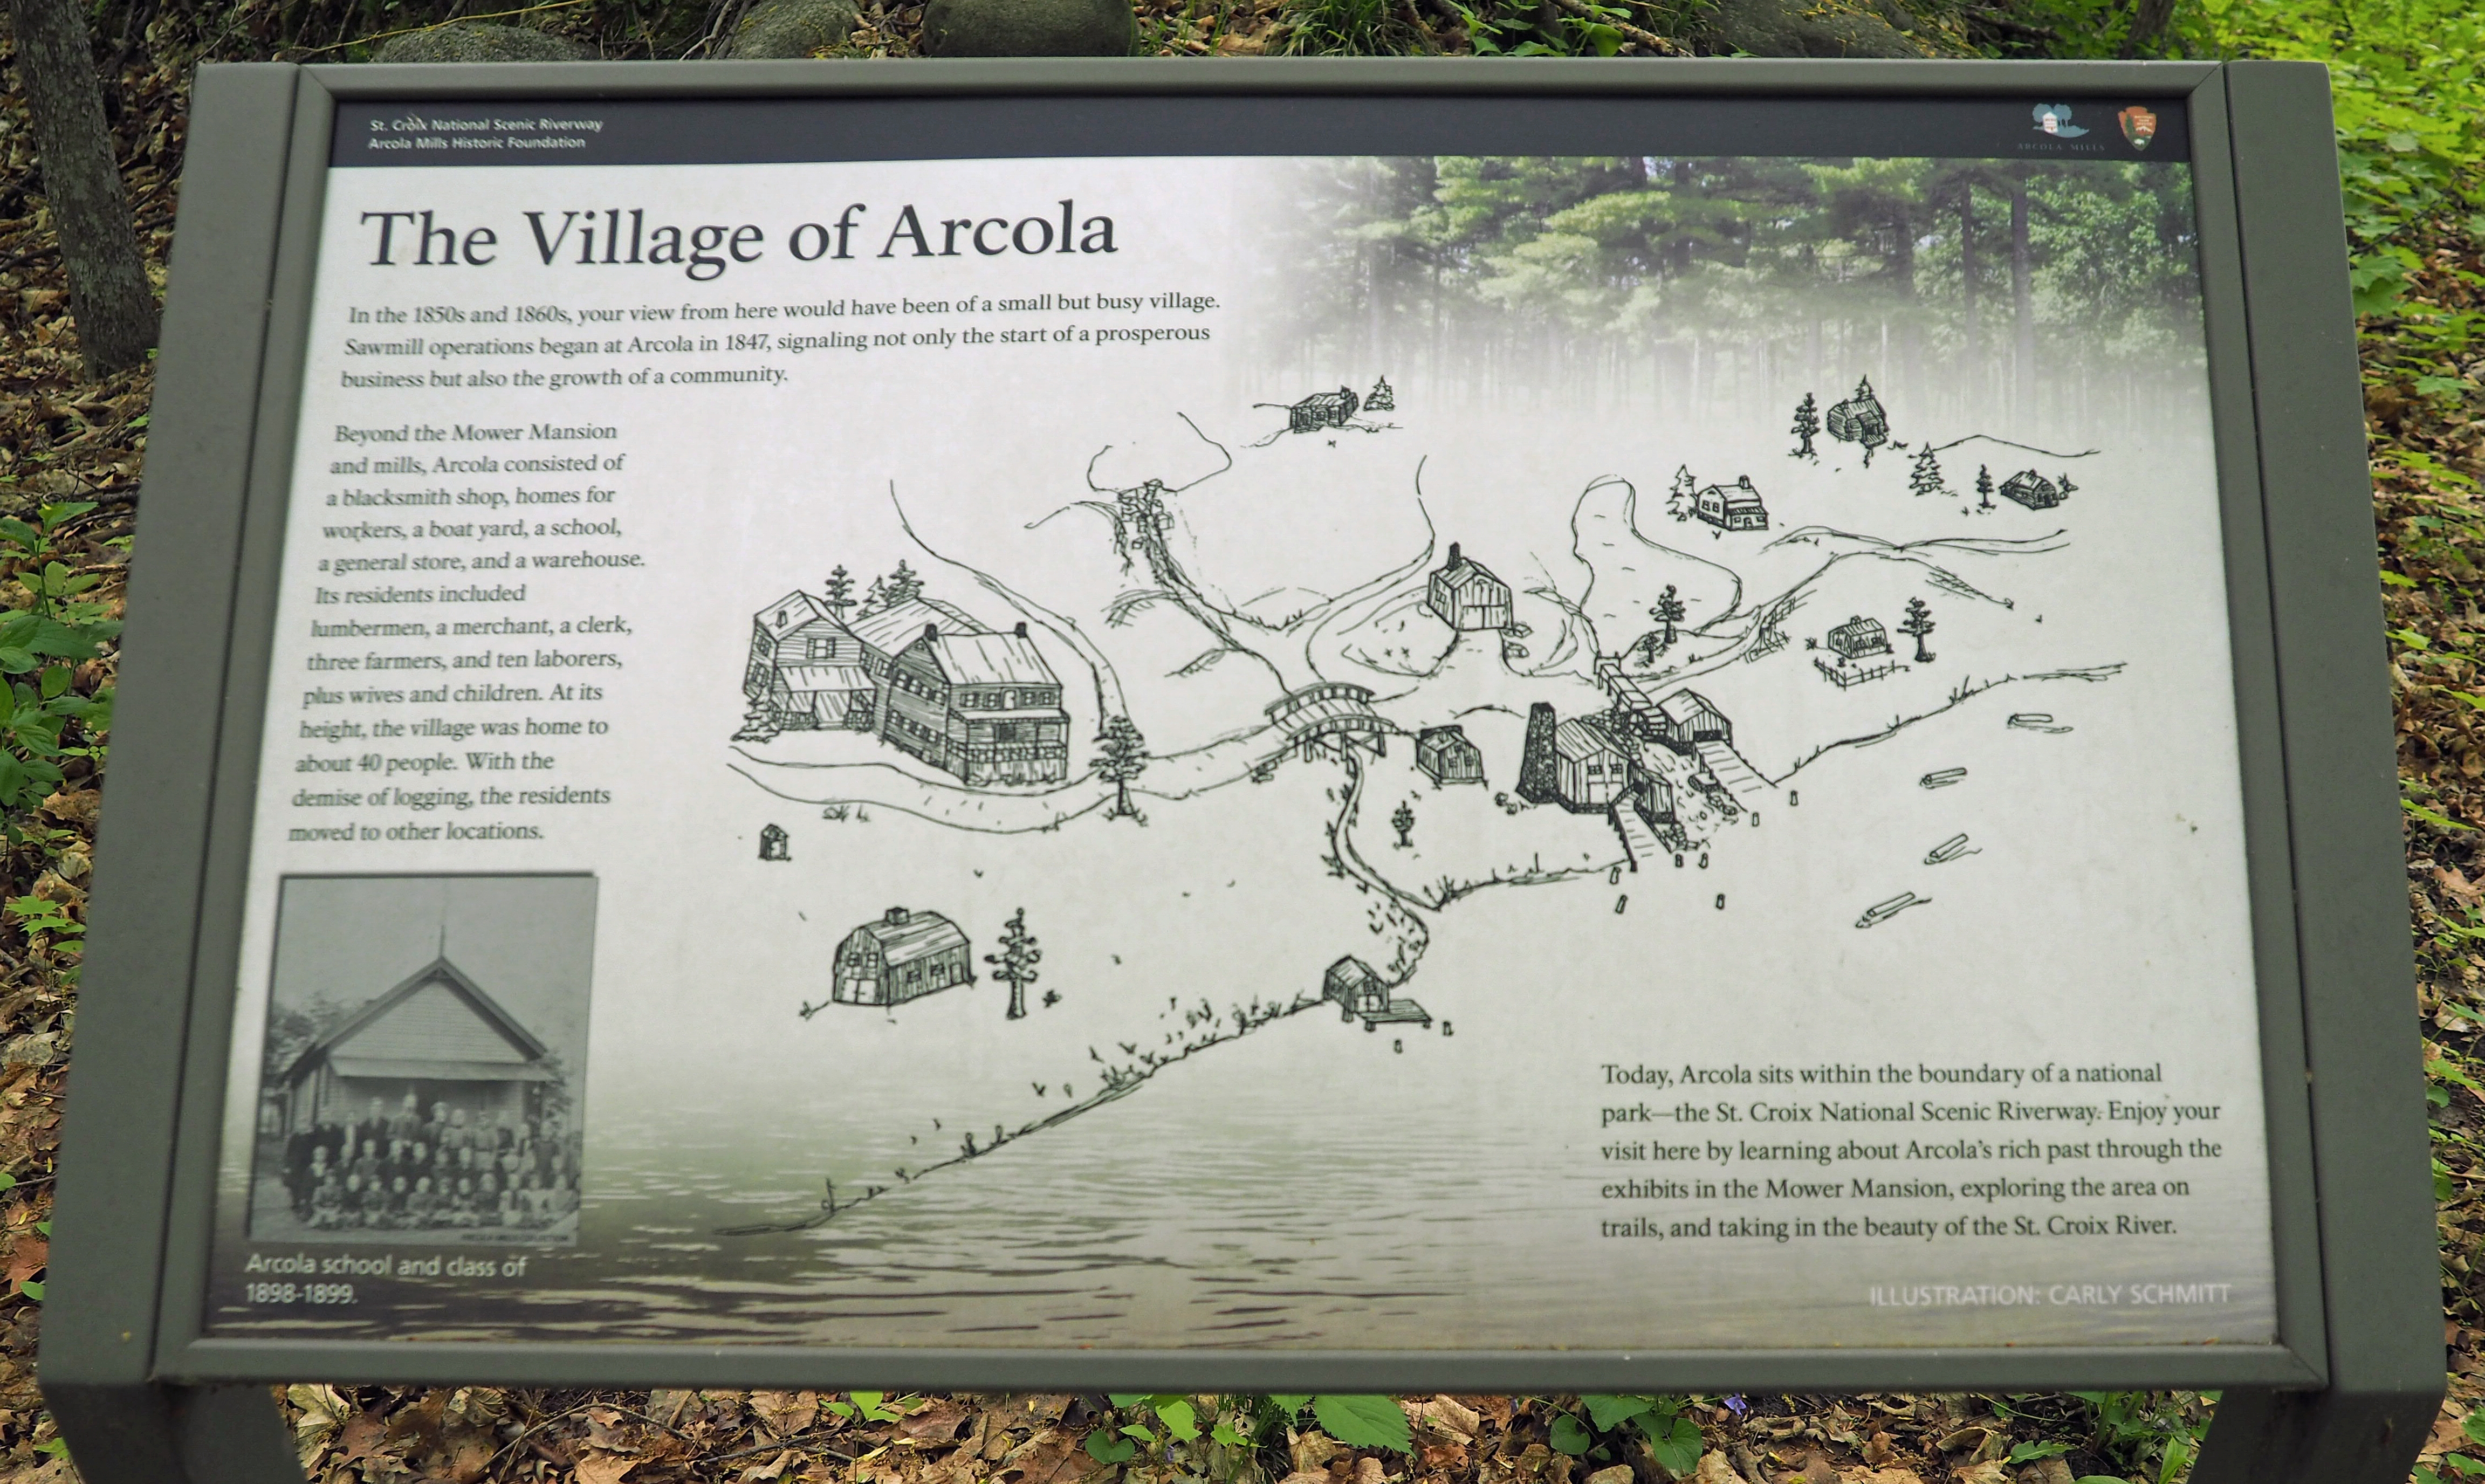 The Village of Arcola marker